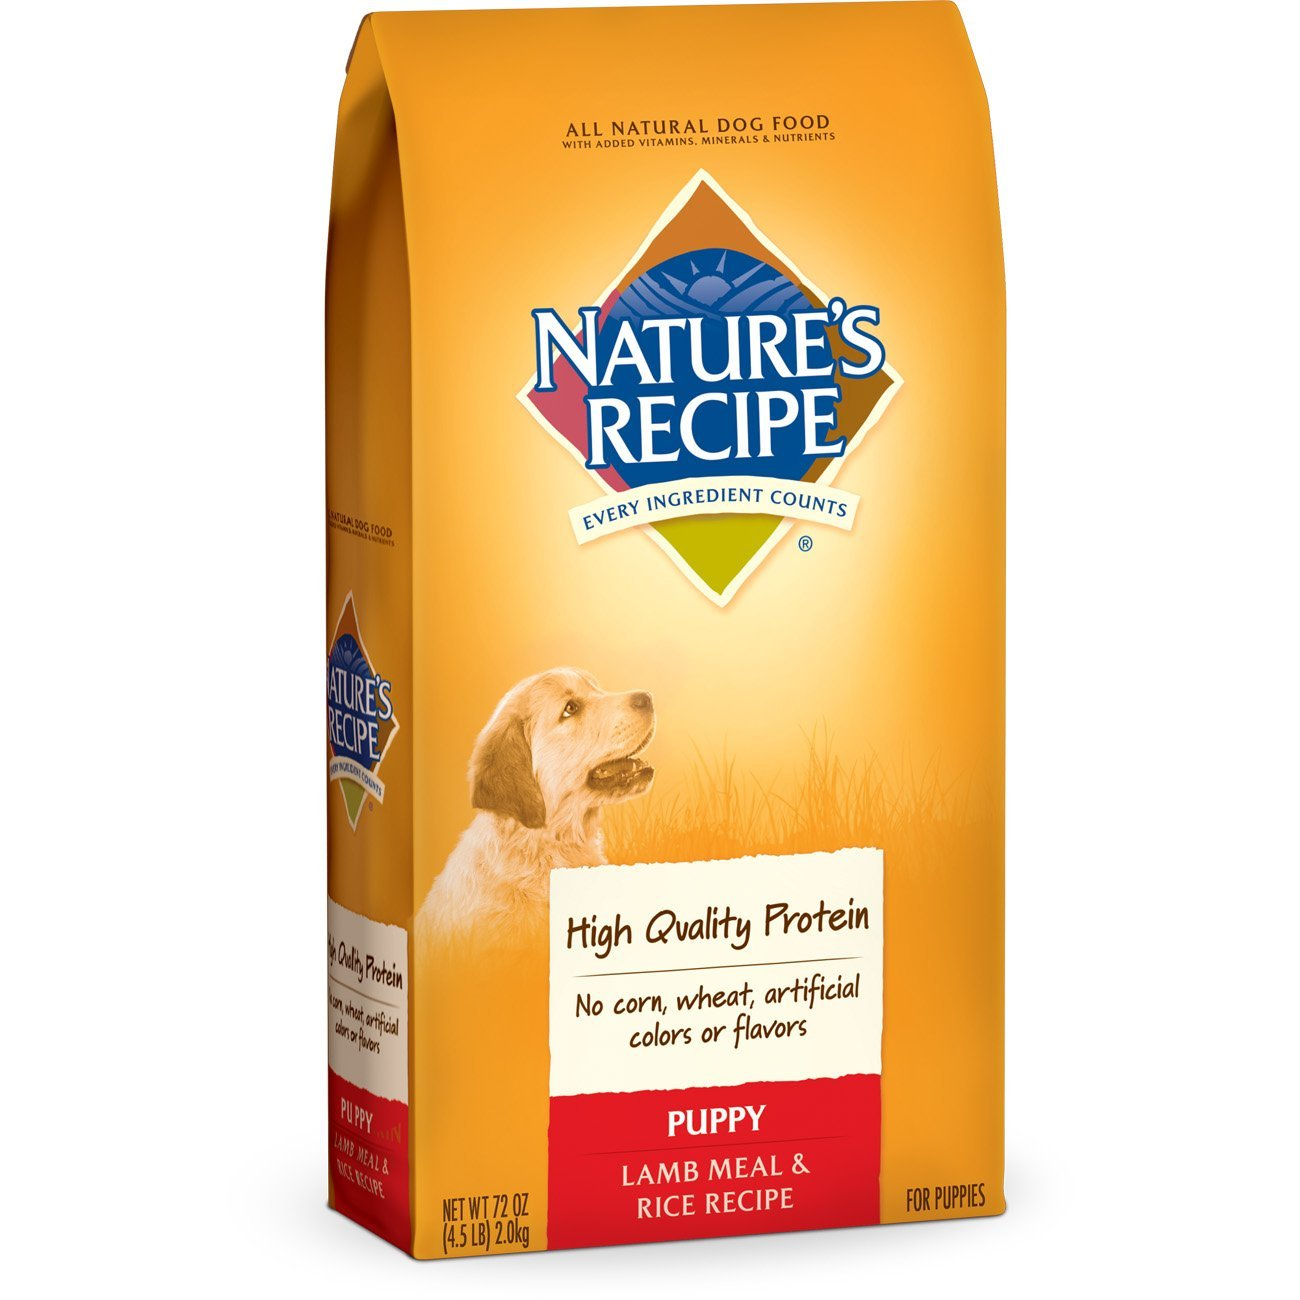 Nature's Recipe Puppy Dog Food